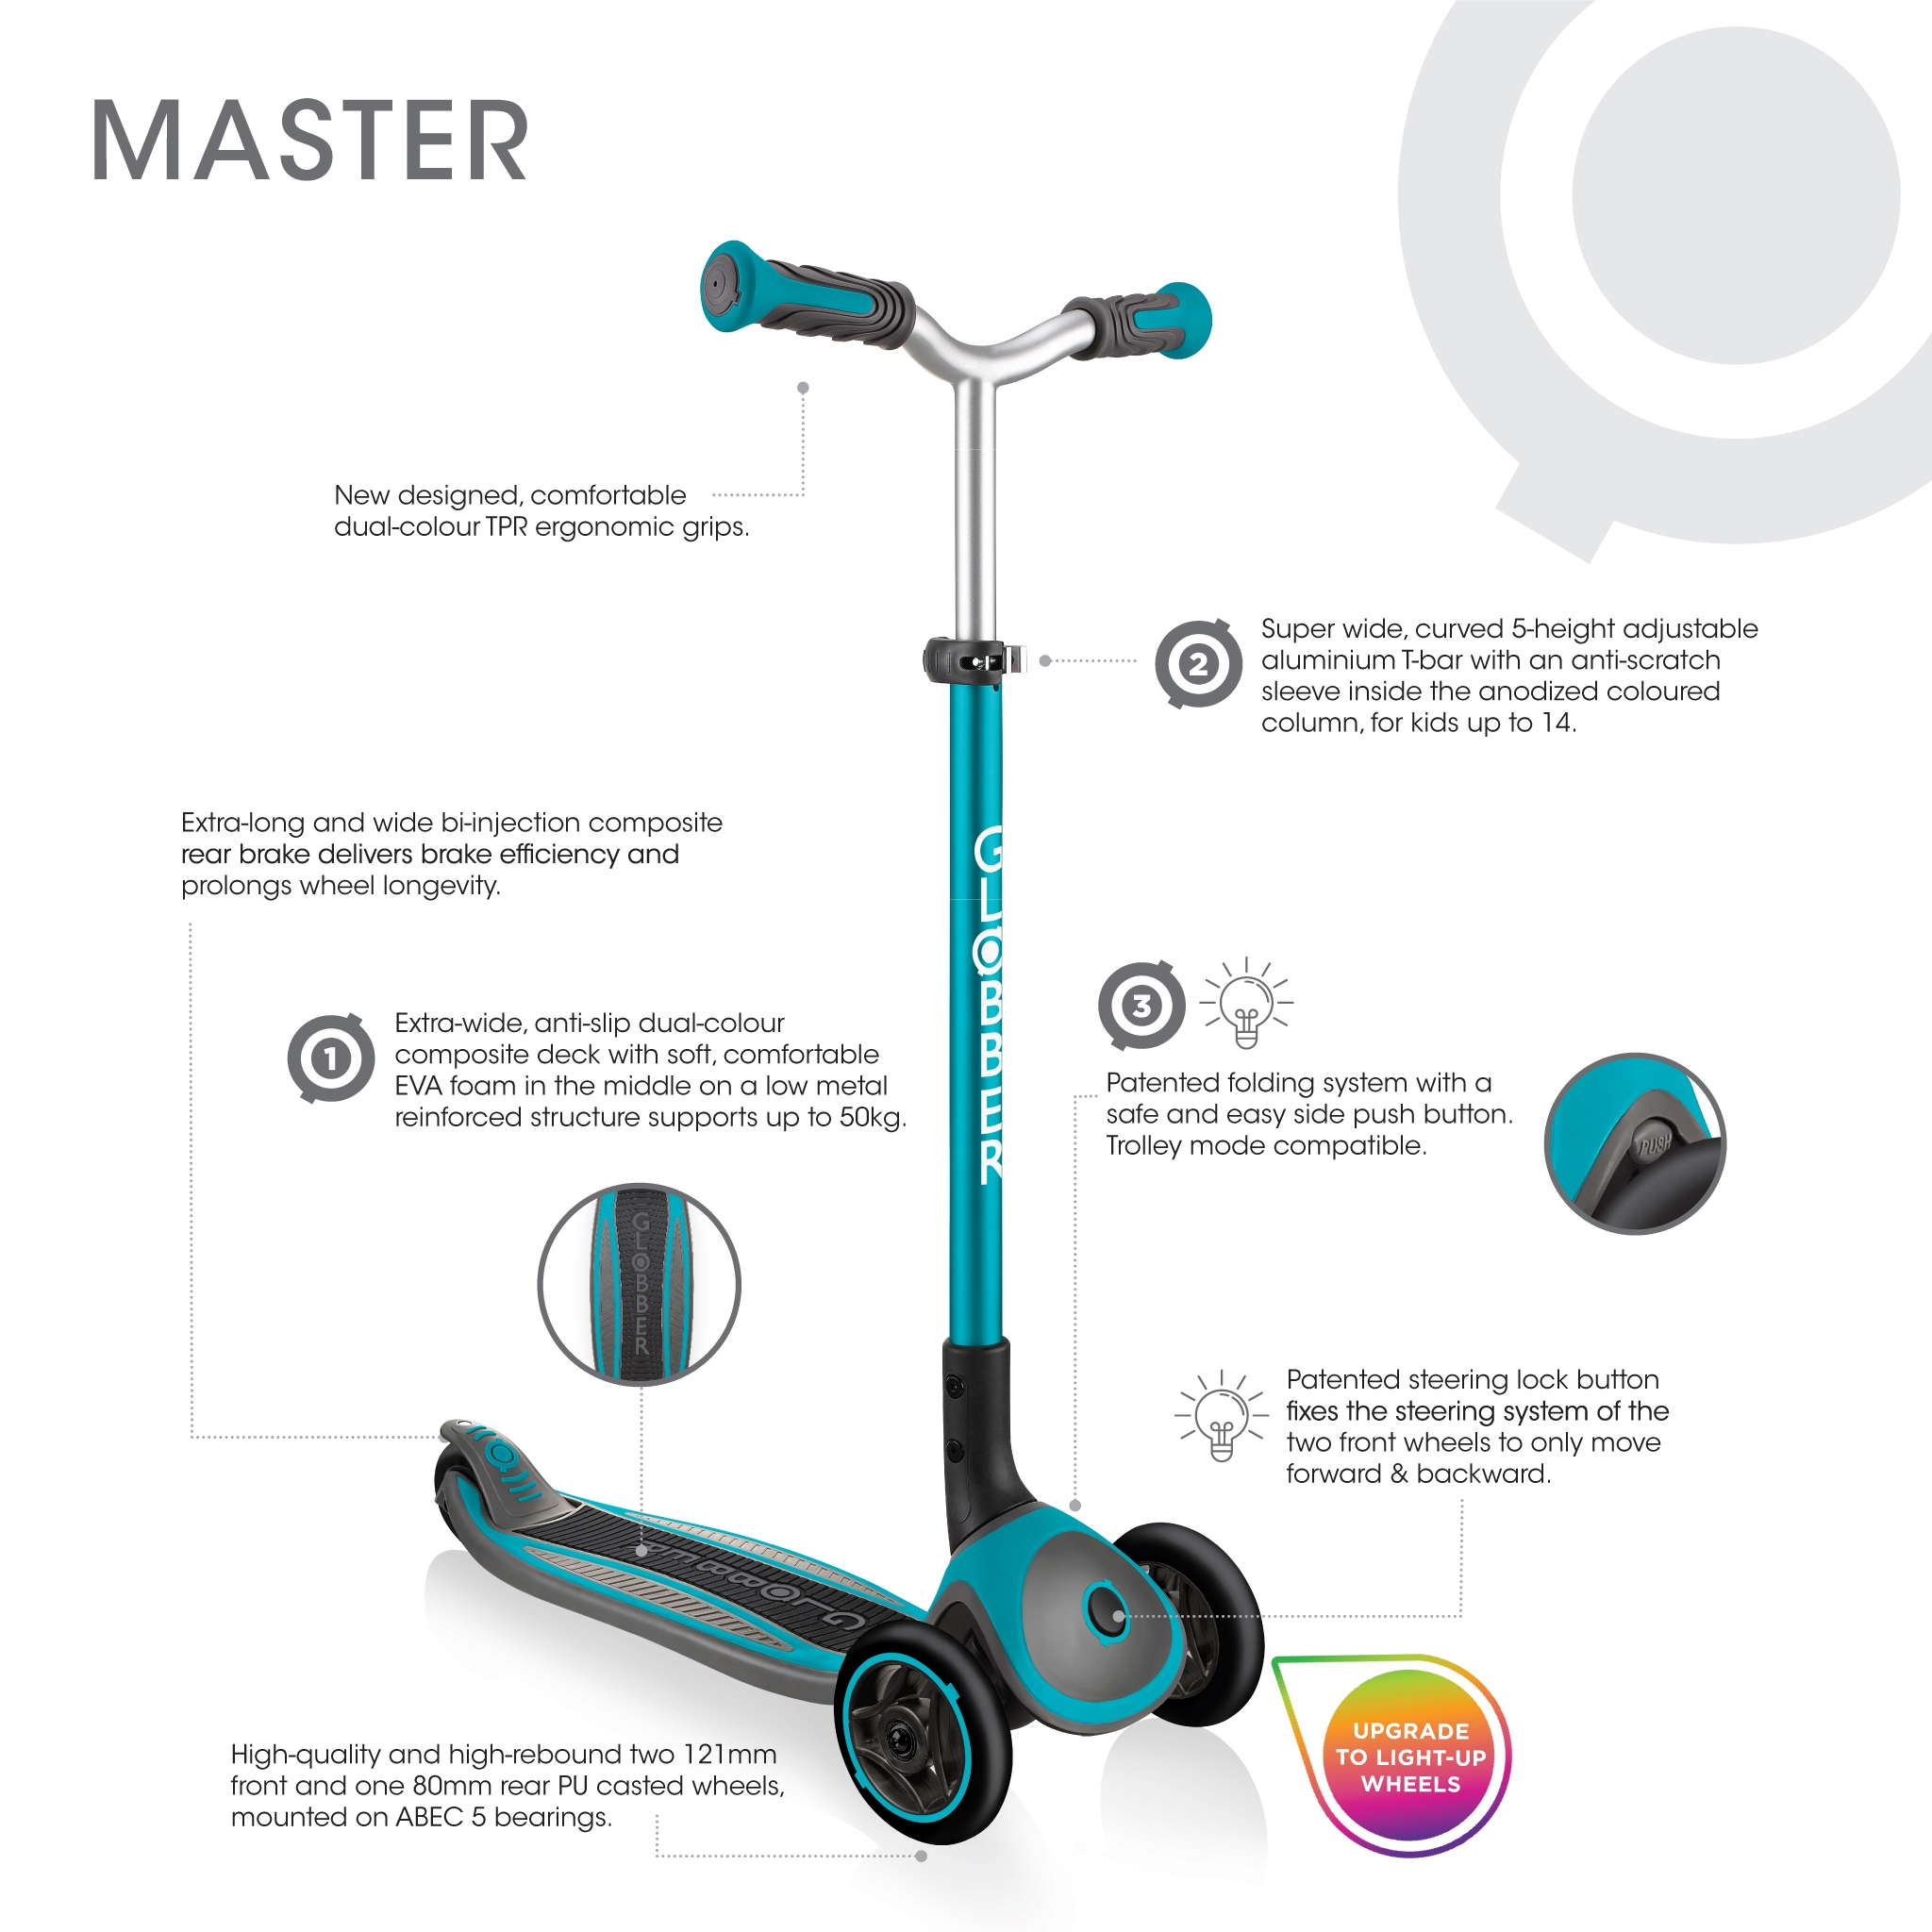 Globber-MASTER-premium-3-wheel-scooter-for-kids-aged-4-to-14 1